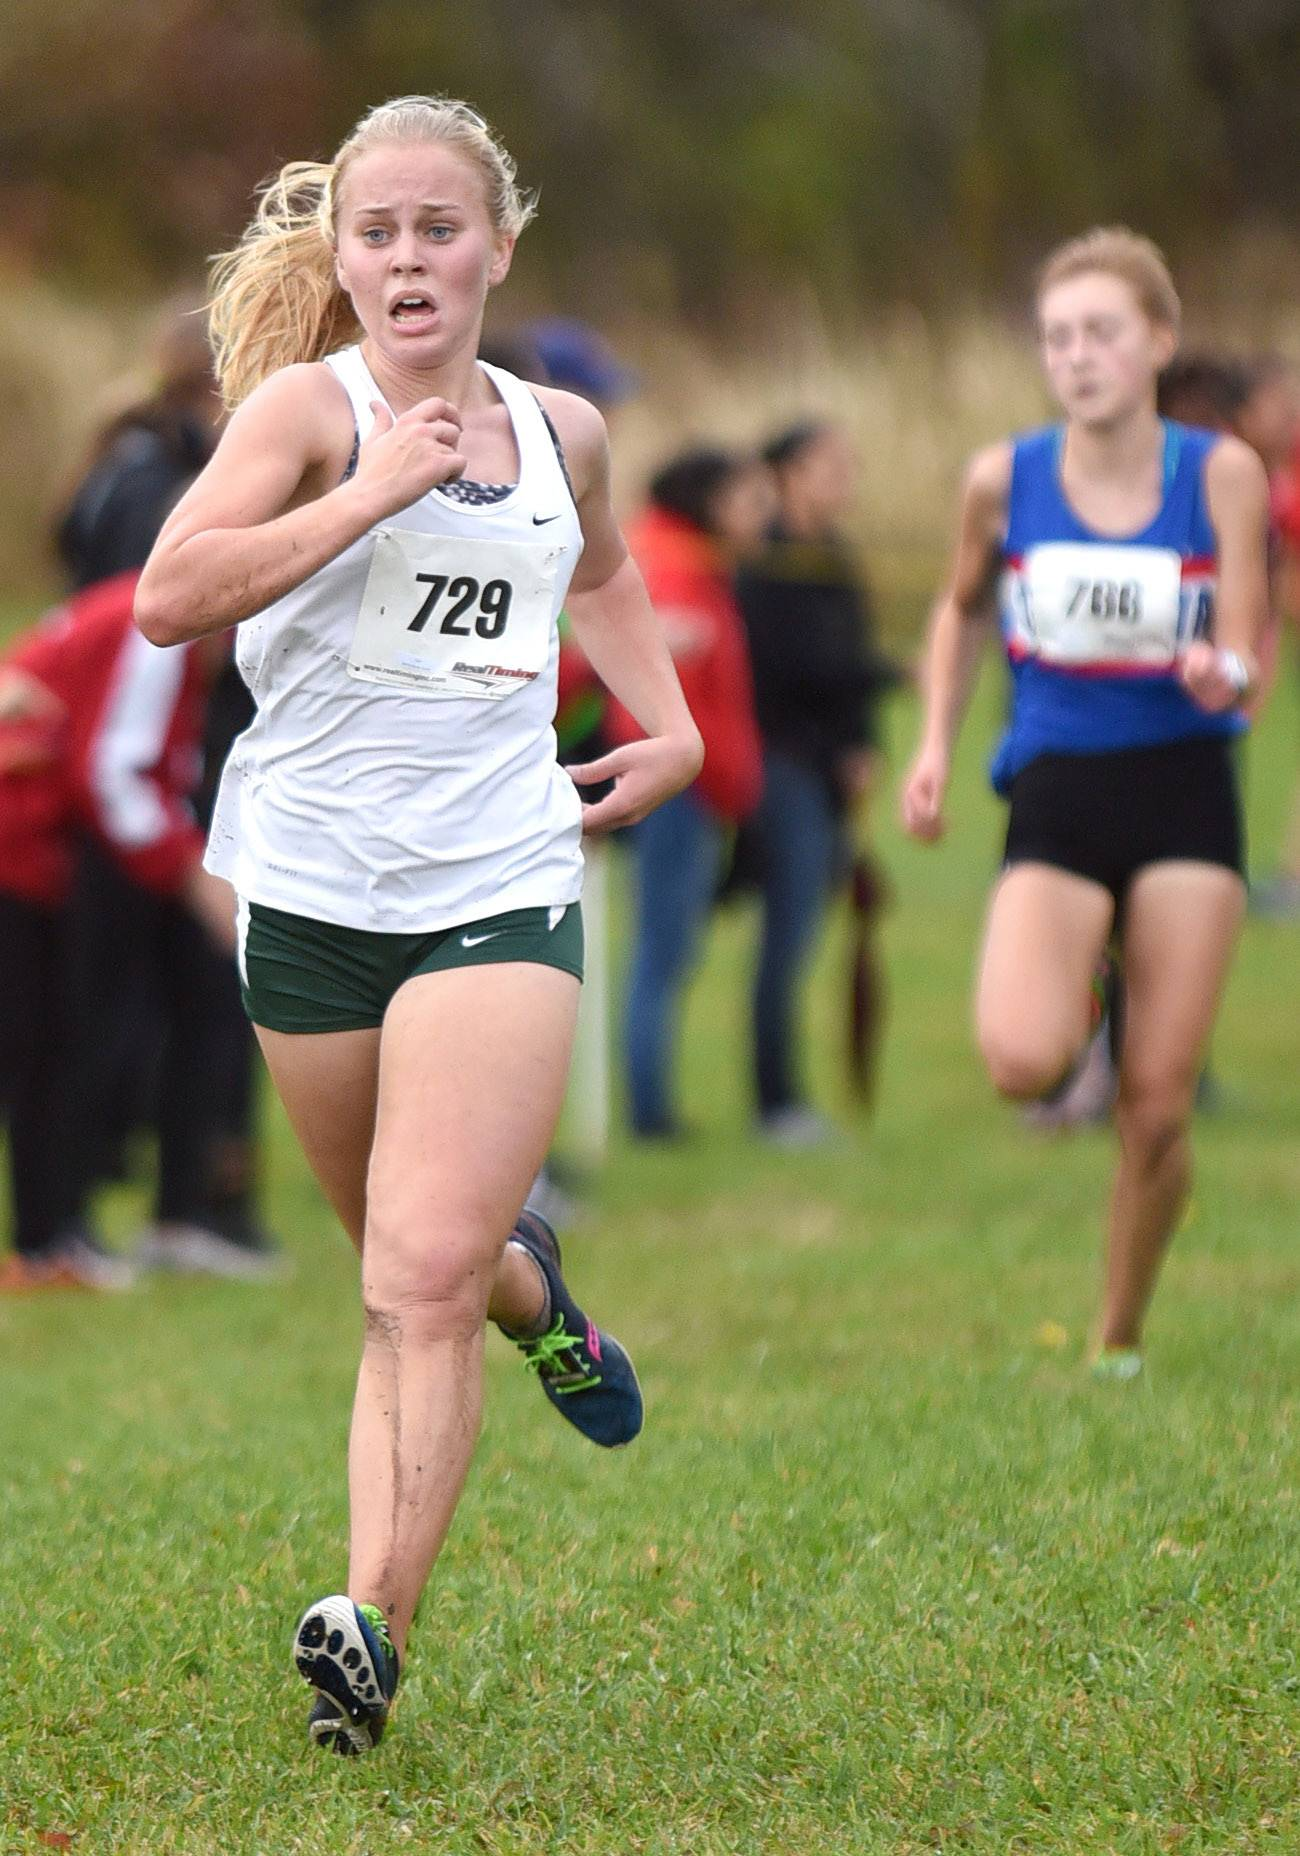 Bartlett's Coral McFarland nears the finish in the girls varsity race to take 17th place with a time of 20:09.2 at the St. Charles North cross country regional on Saturday.